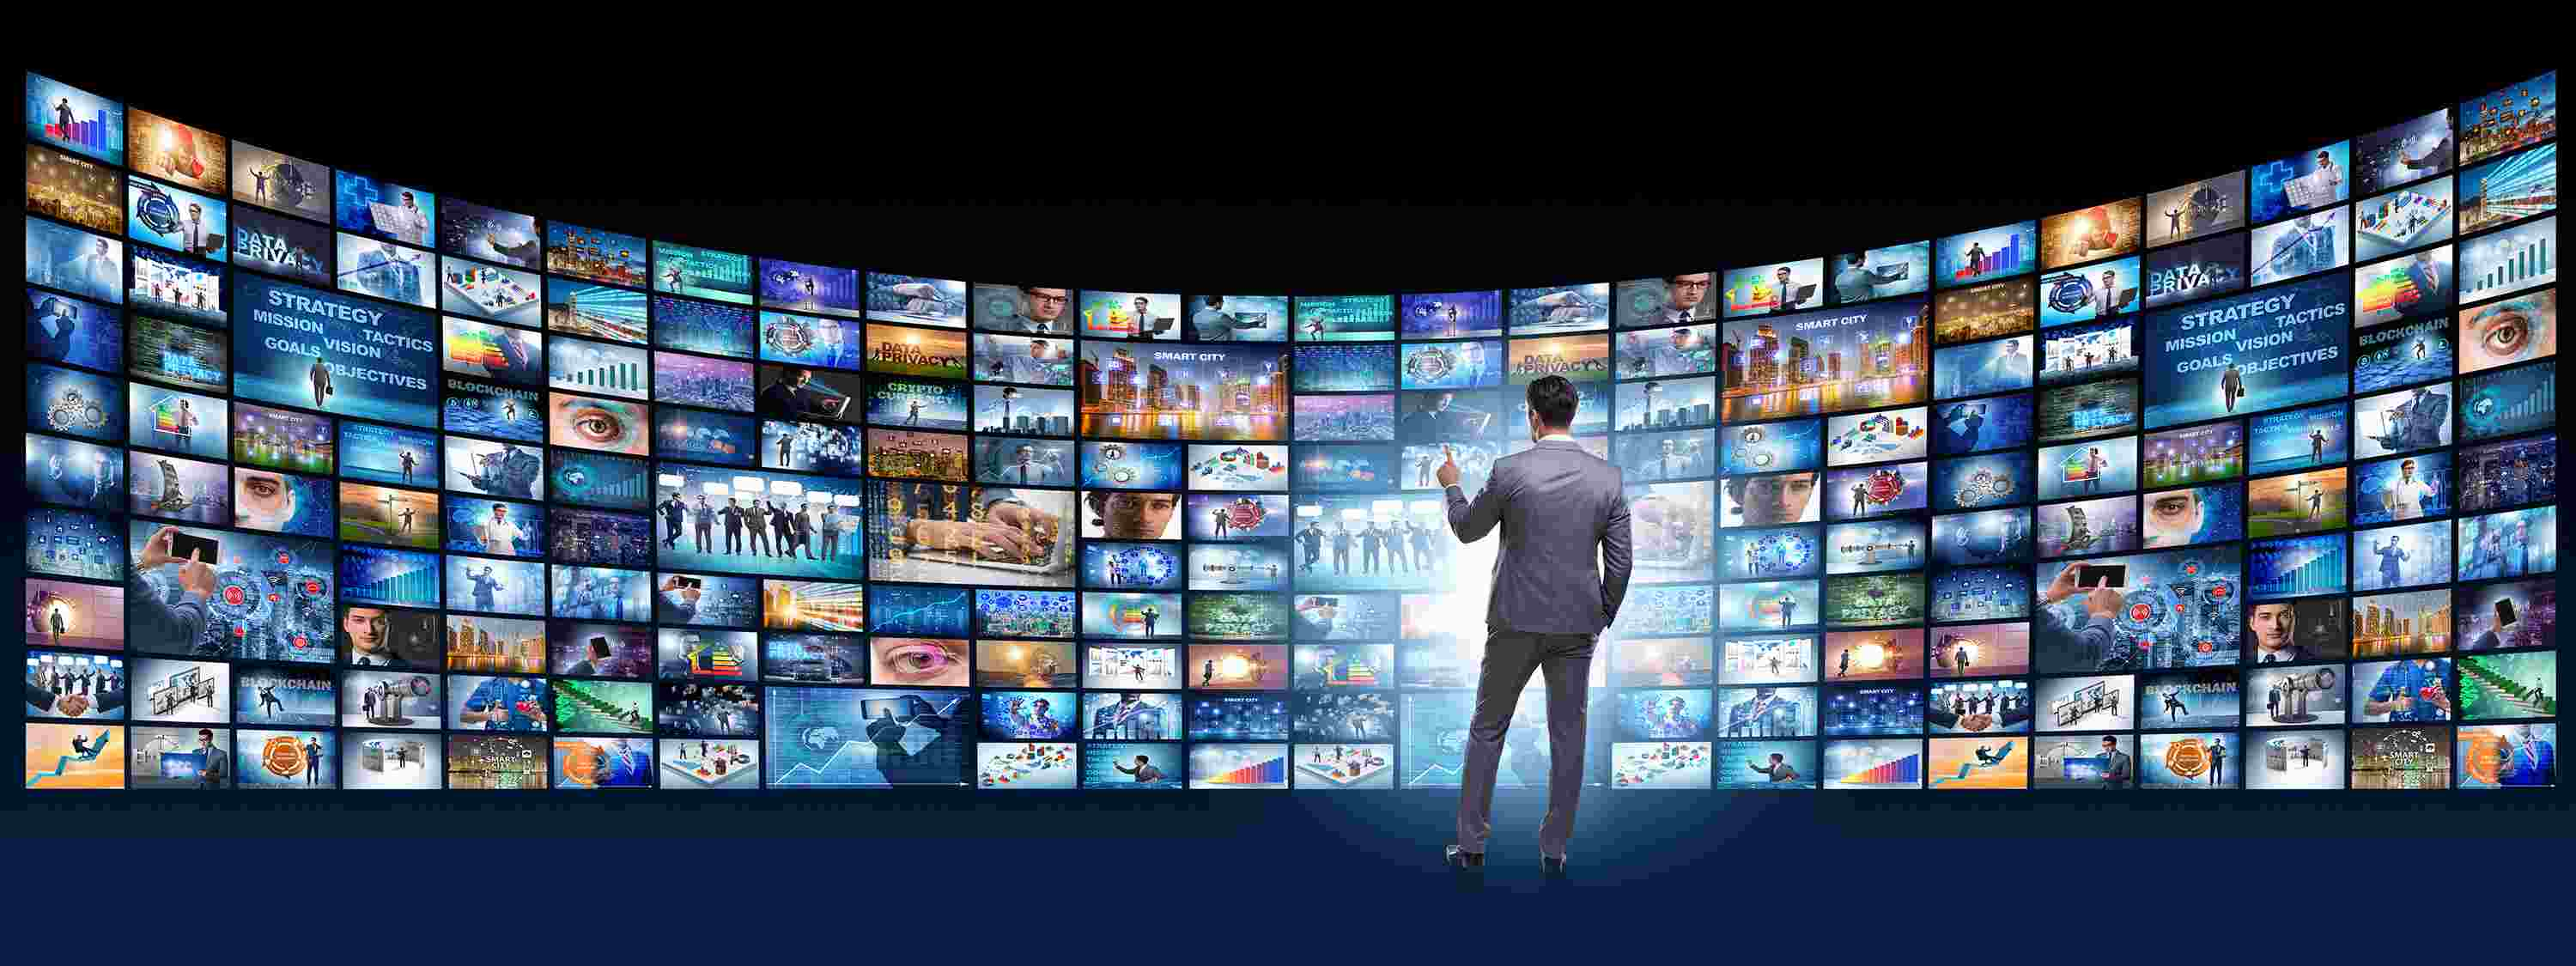 Fixing Cable and Media to a Digital-CX centric Organization